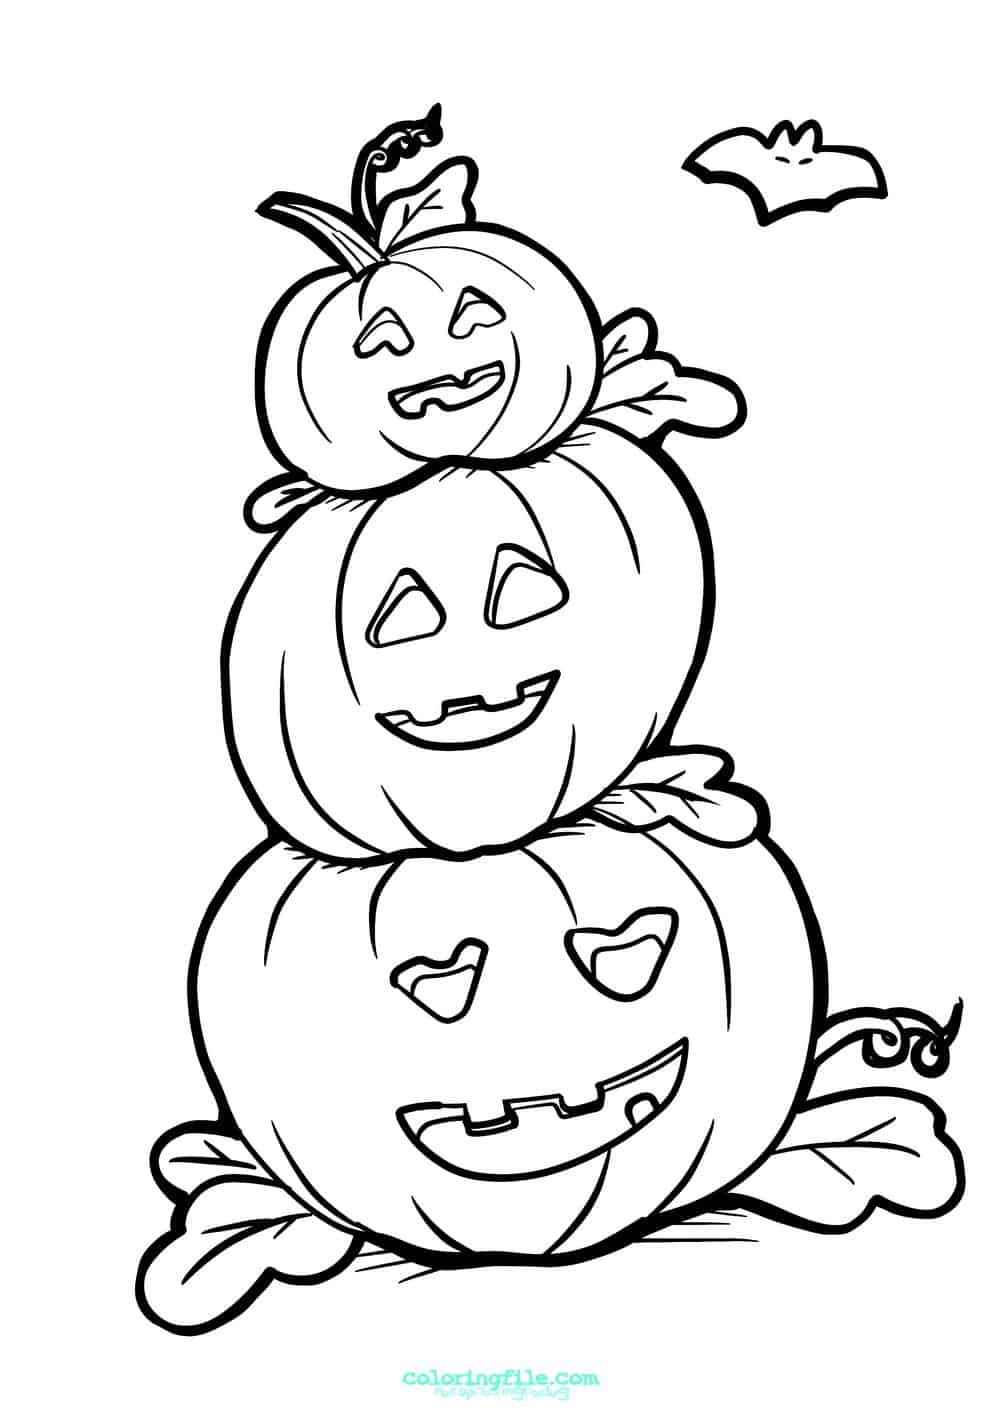 Free Printable Pumpkin Coloring Pages For Kids Pumpkin Coloring Pages Pumpkin Coloring Sheet Halloween Coloring Sheets